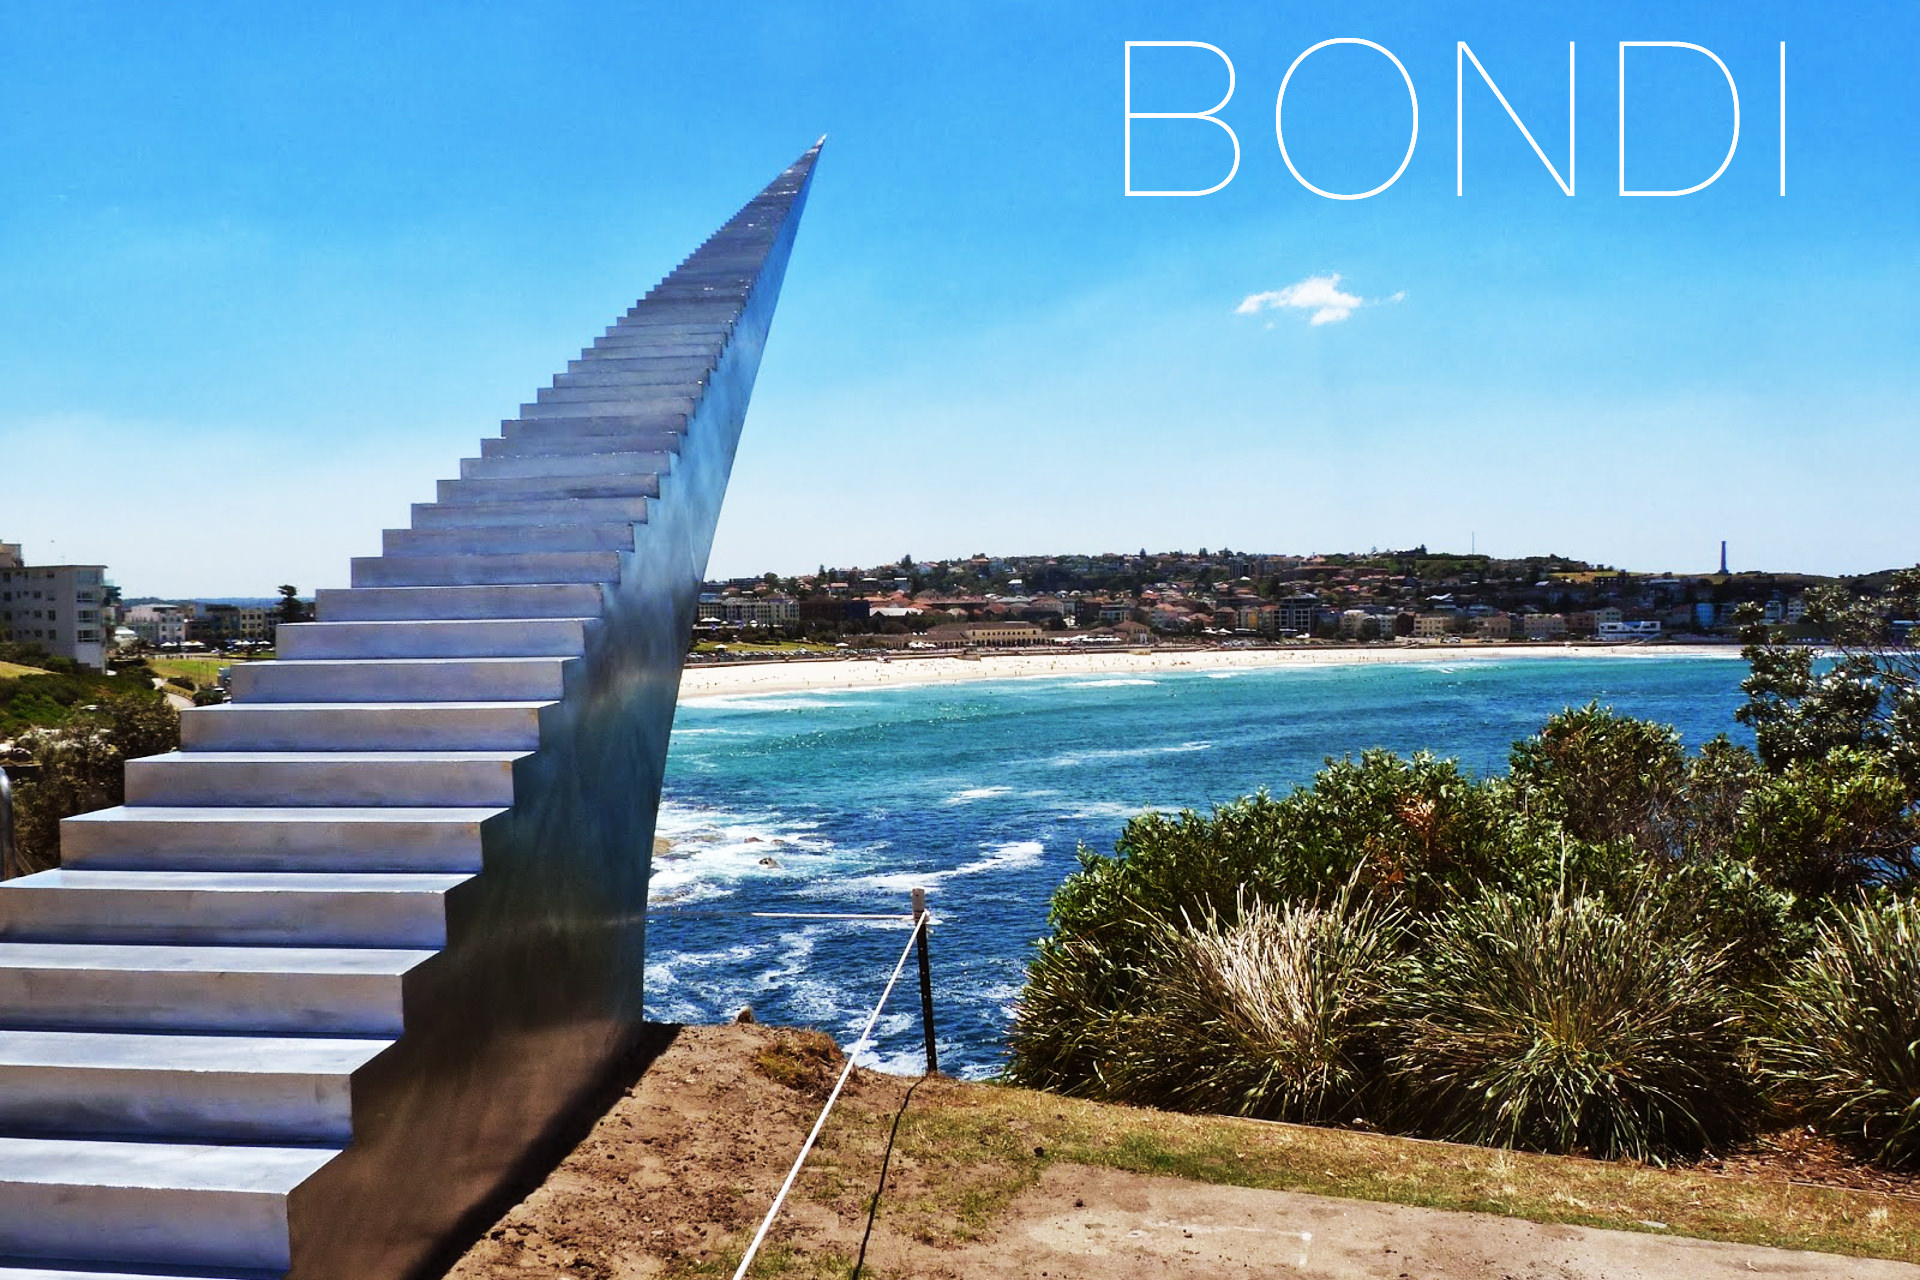 For Anyone Who Has Been To Sydney Bondi Means Beach Sand And Surf Yep It Good Times Many Backpackers Millionaires Surfers